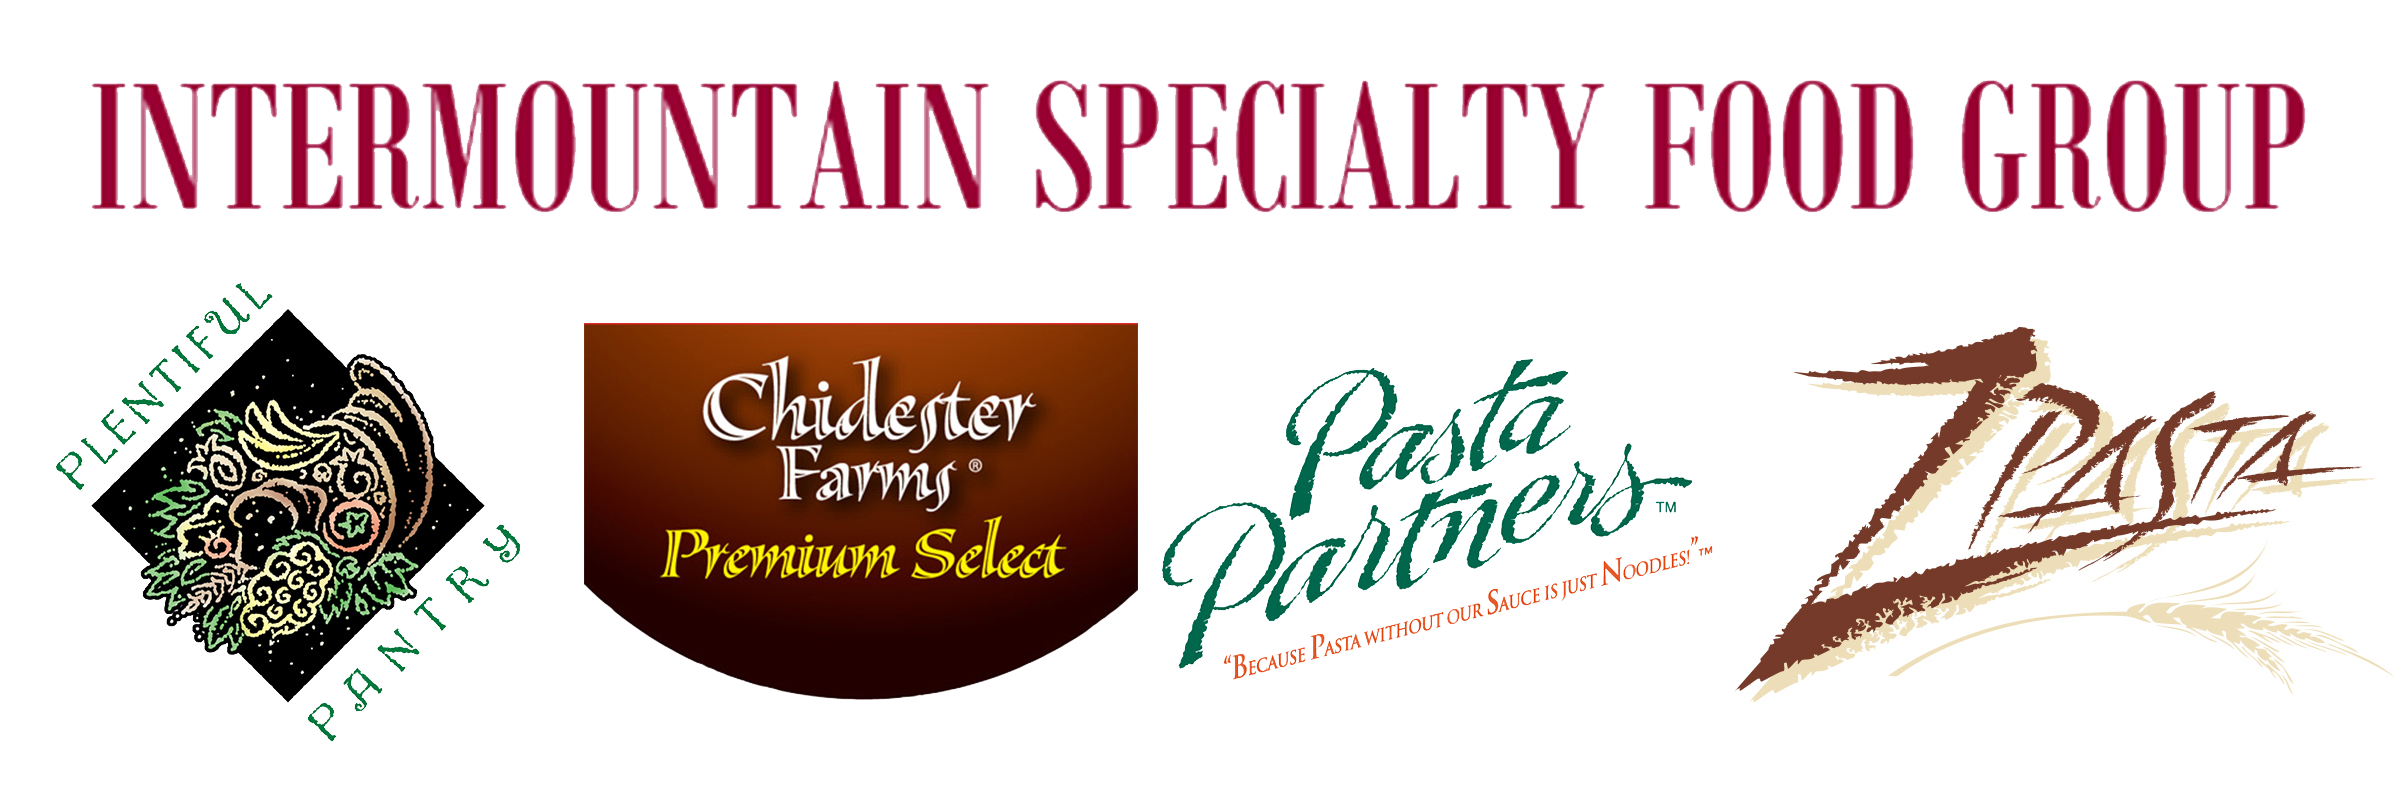 Intermountain Specialty Food Group